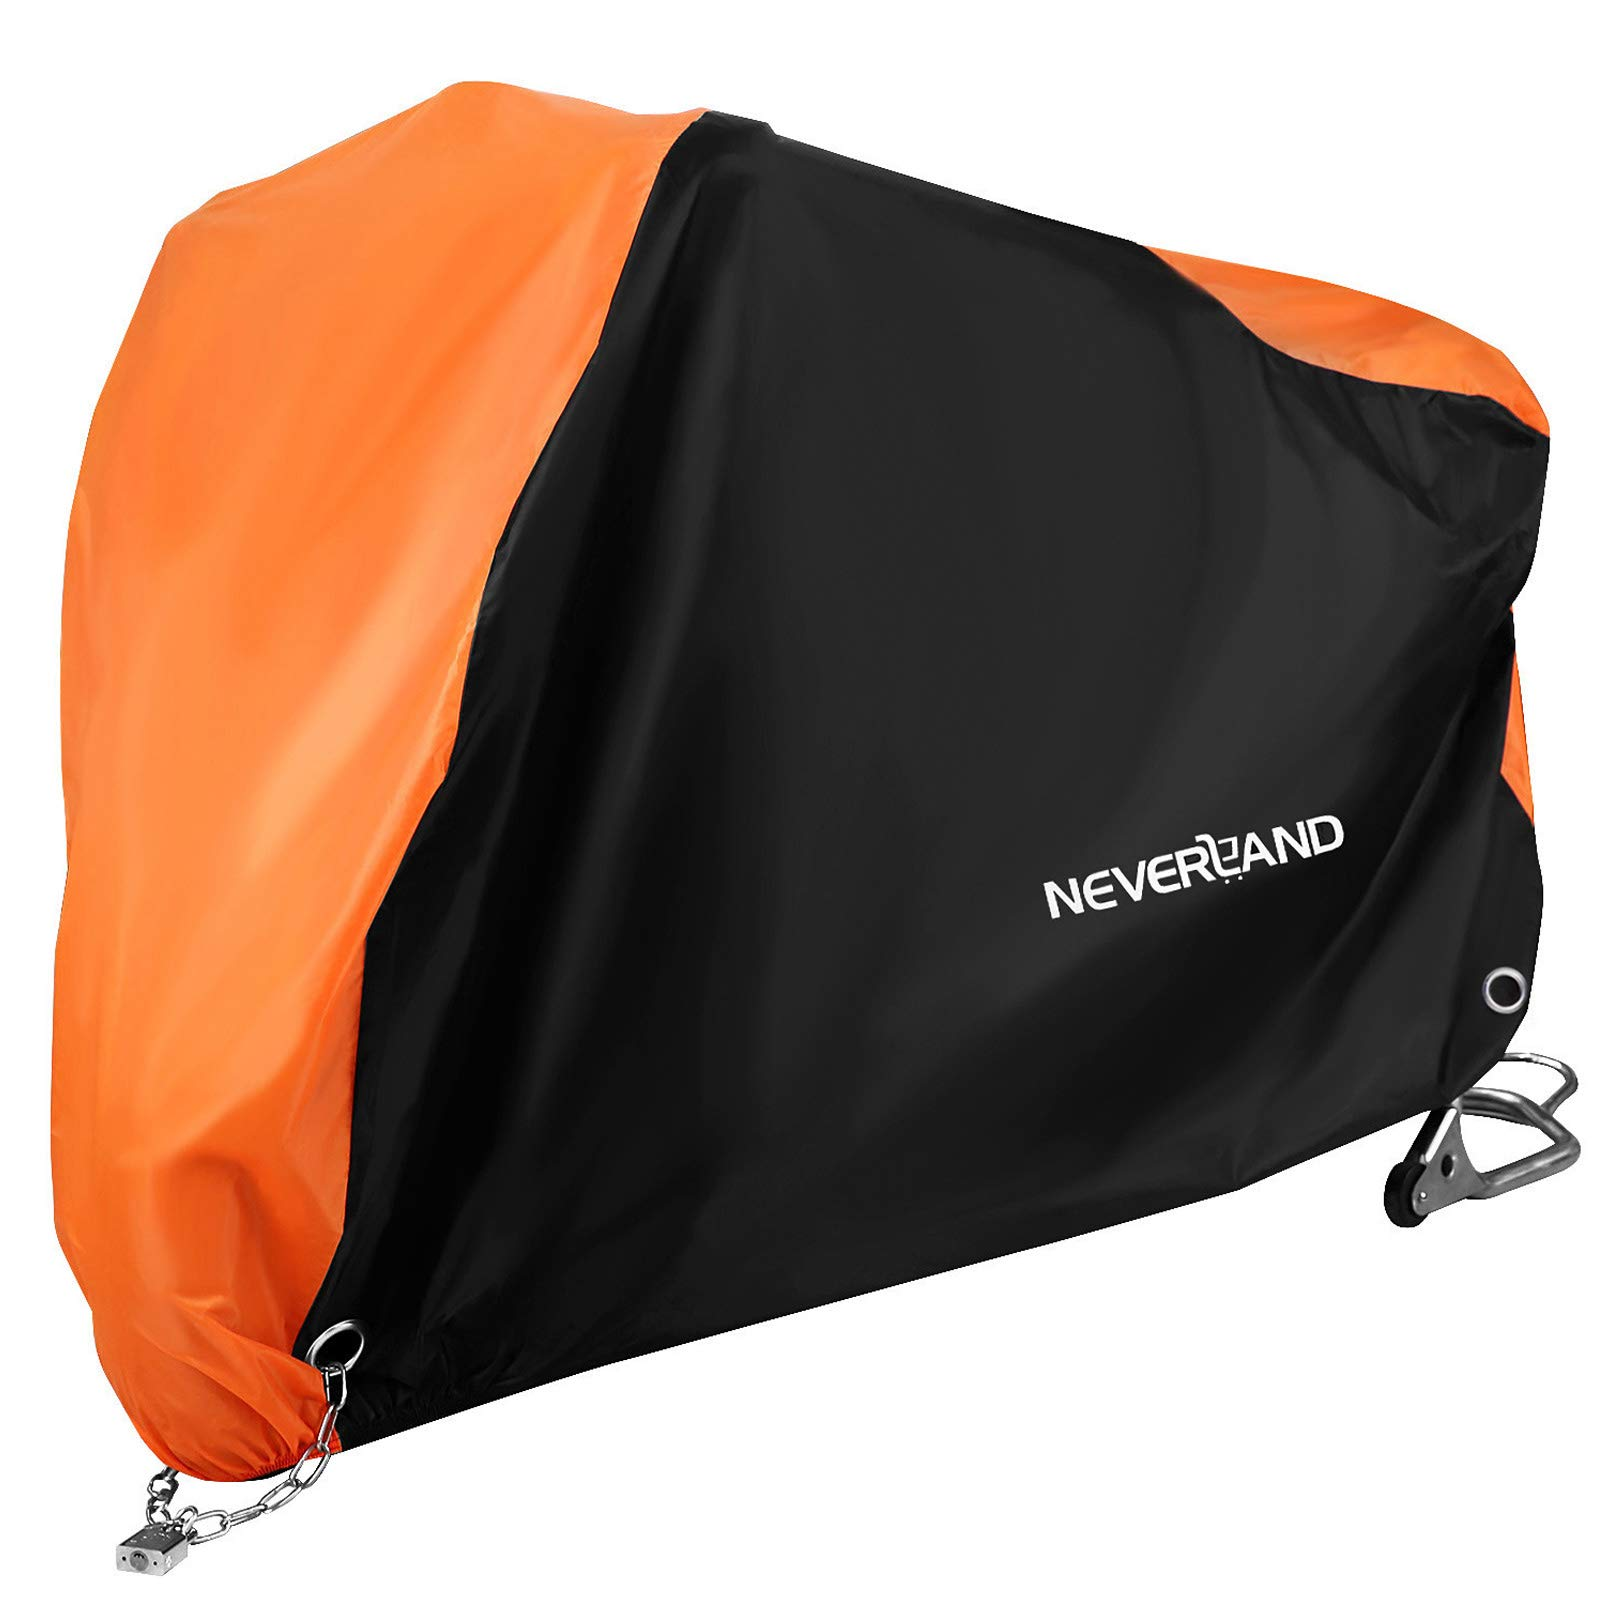 NEVERLAND Motorcycle Cover,Outdoor Waterproof Oxford Cloth UV Dust Protector lockable Bandage scooter Cover Fits 106''-116''Road,Cruiser,Touring (Black & Orange)